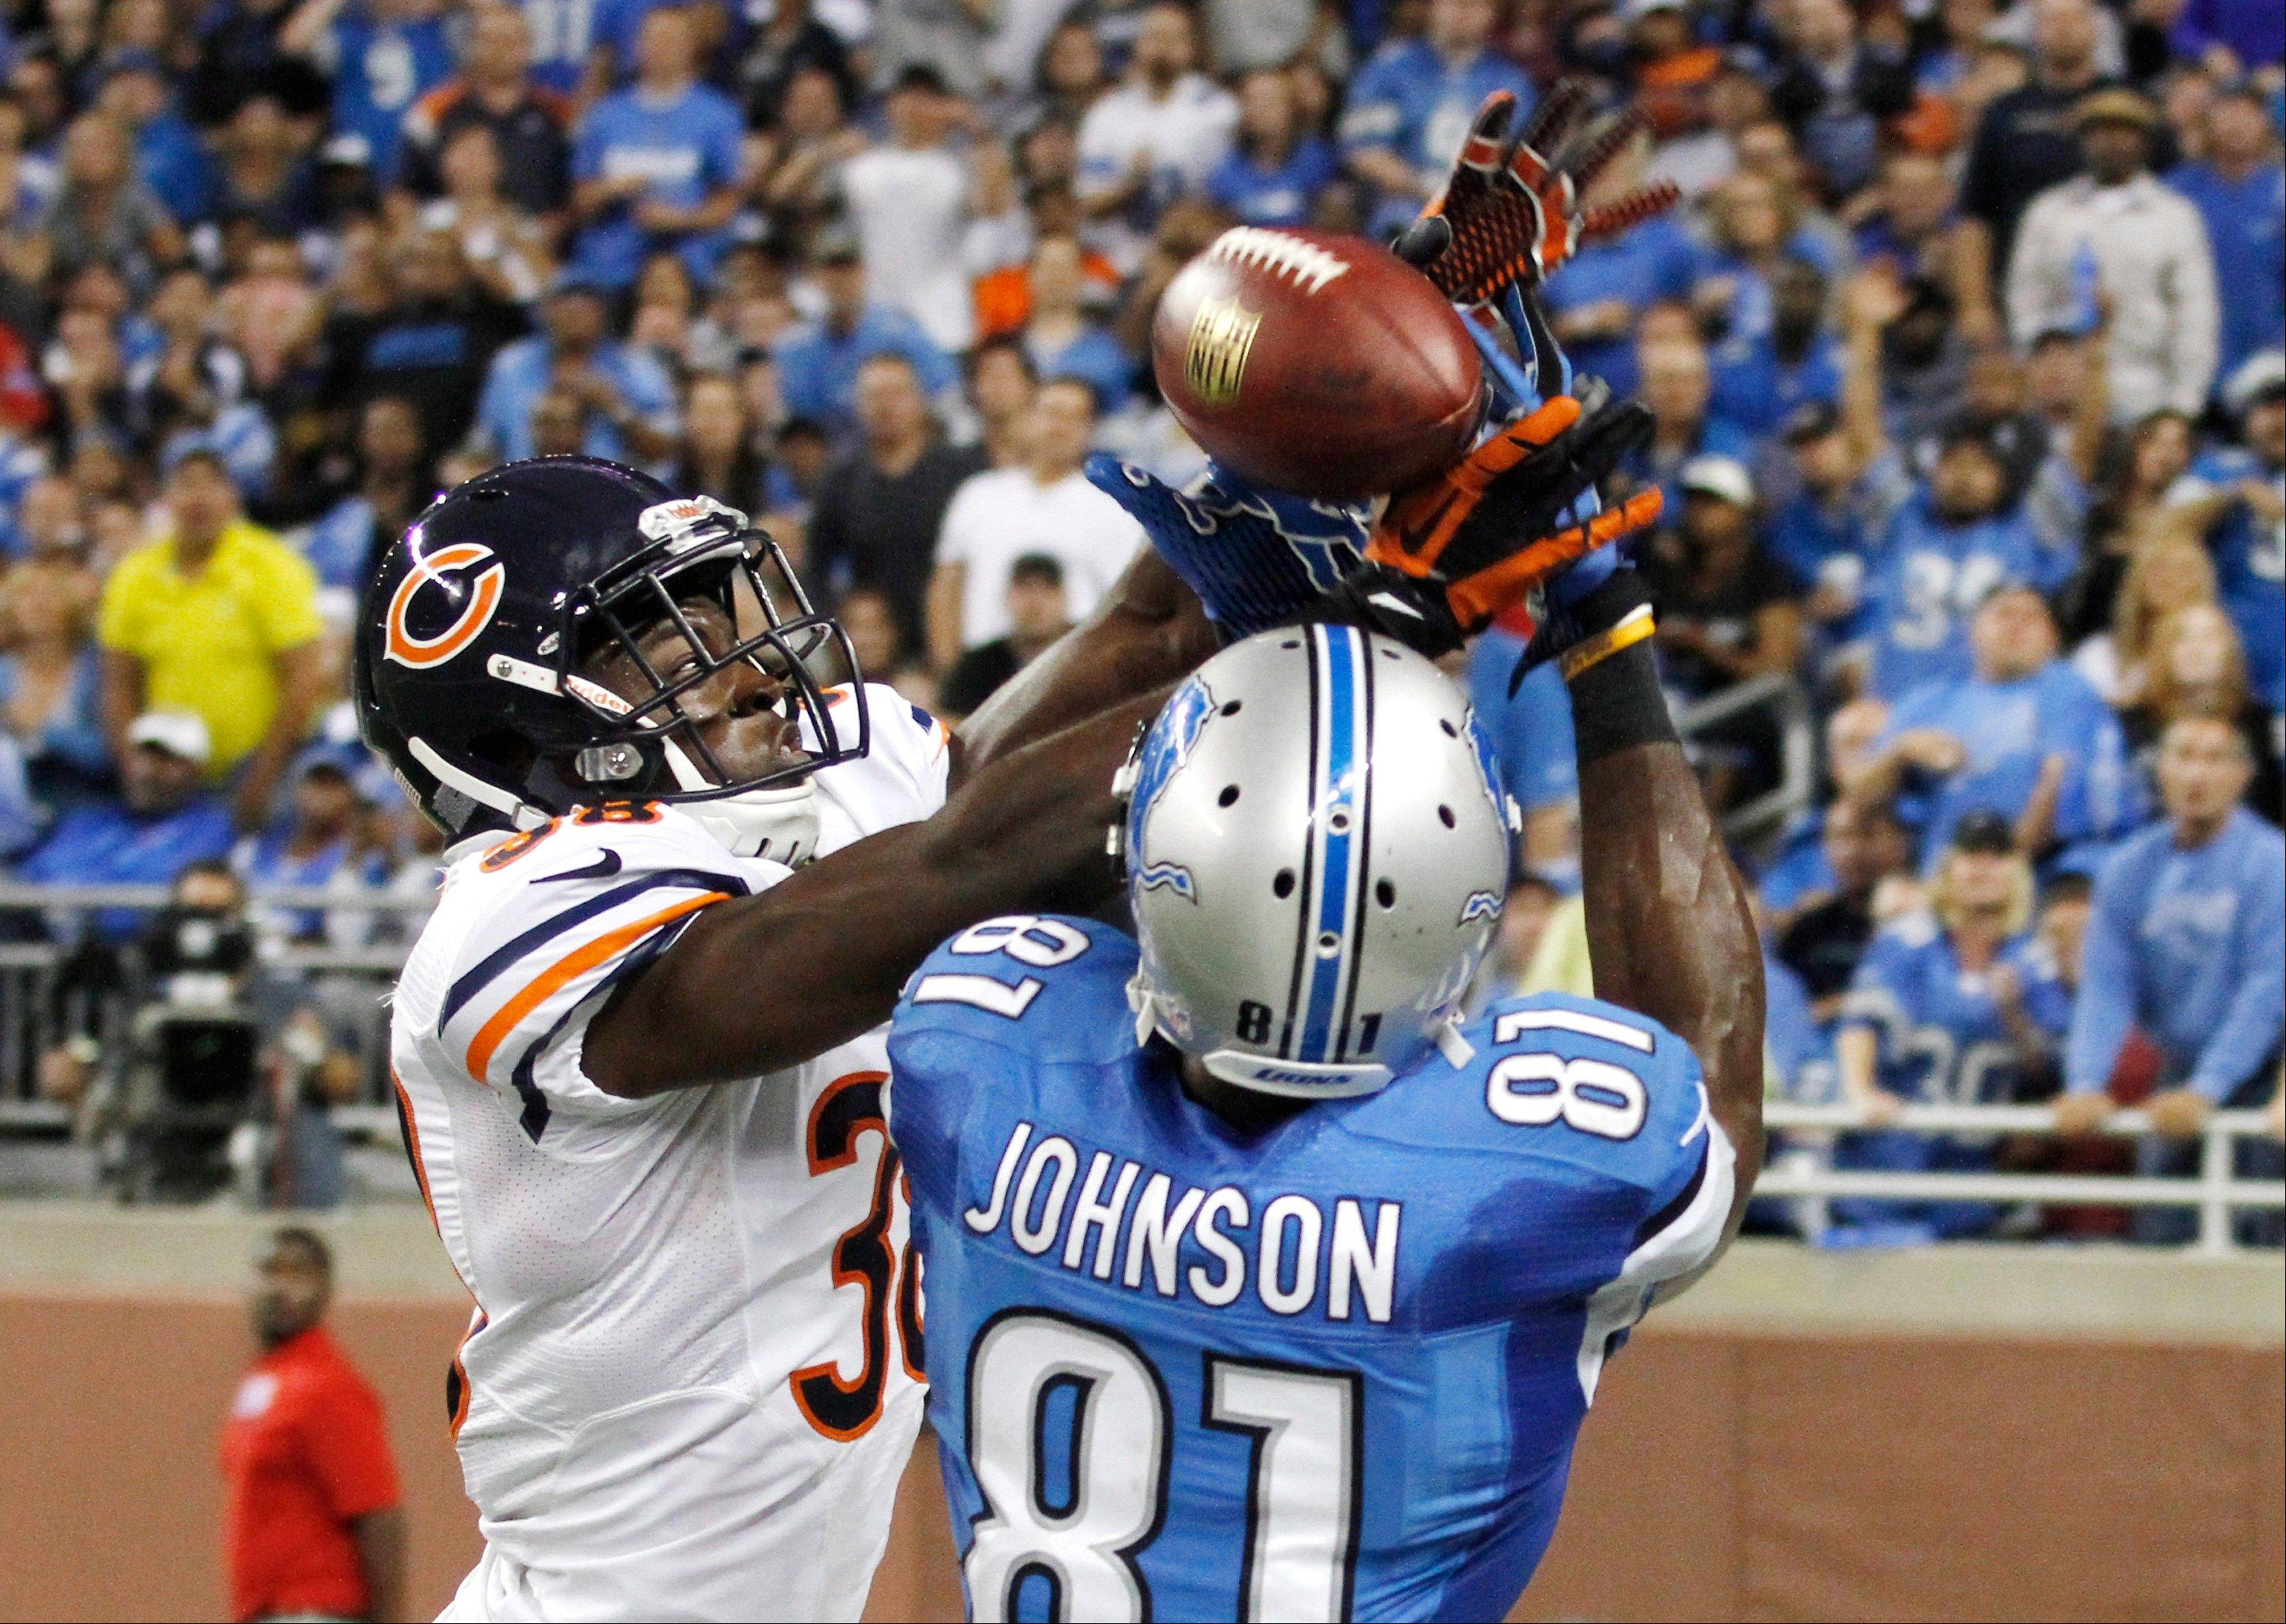 Chicago Bears defensive back Zack Bowman (38) breaks up a pass intended for Detroit Lions wide receiver Calvin Johnson (81) during the fourth quarter.